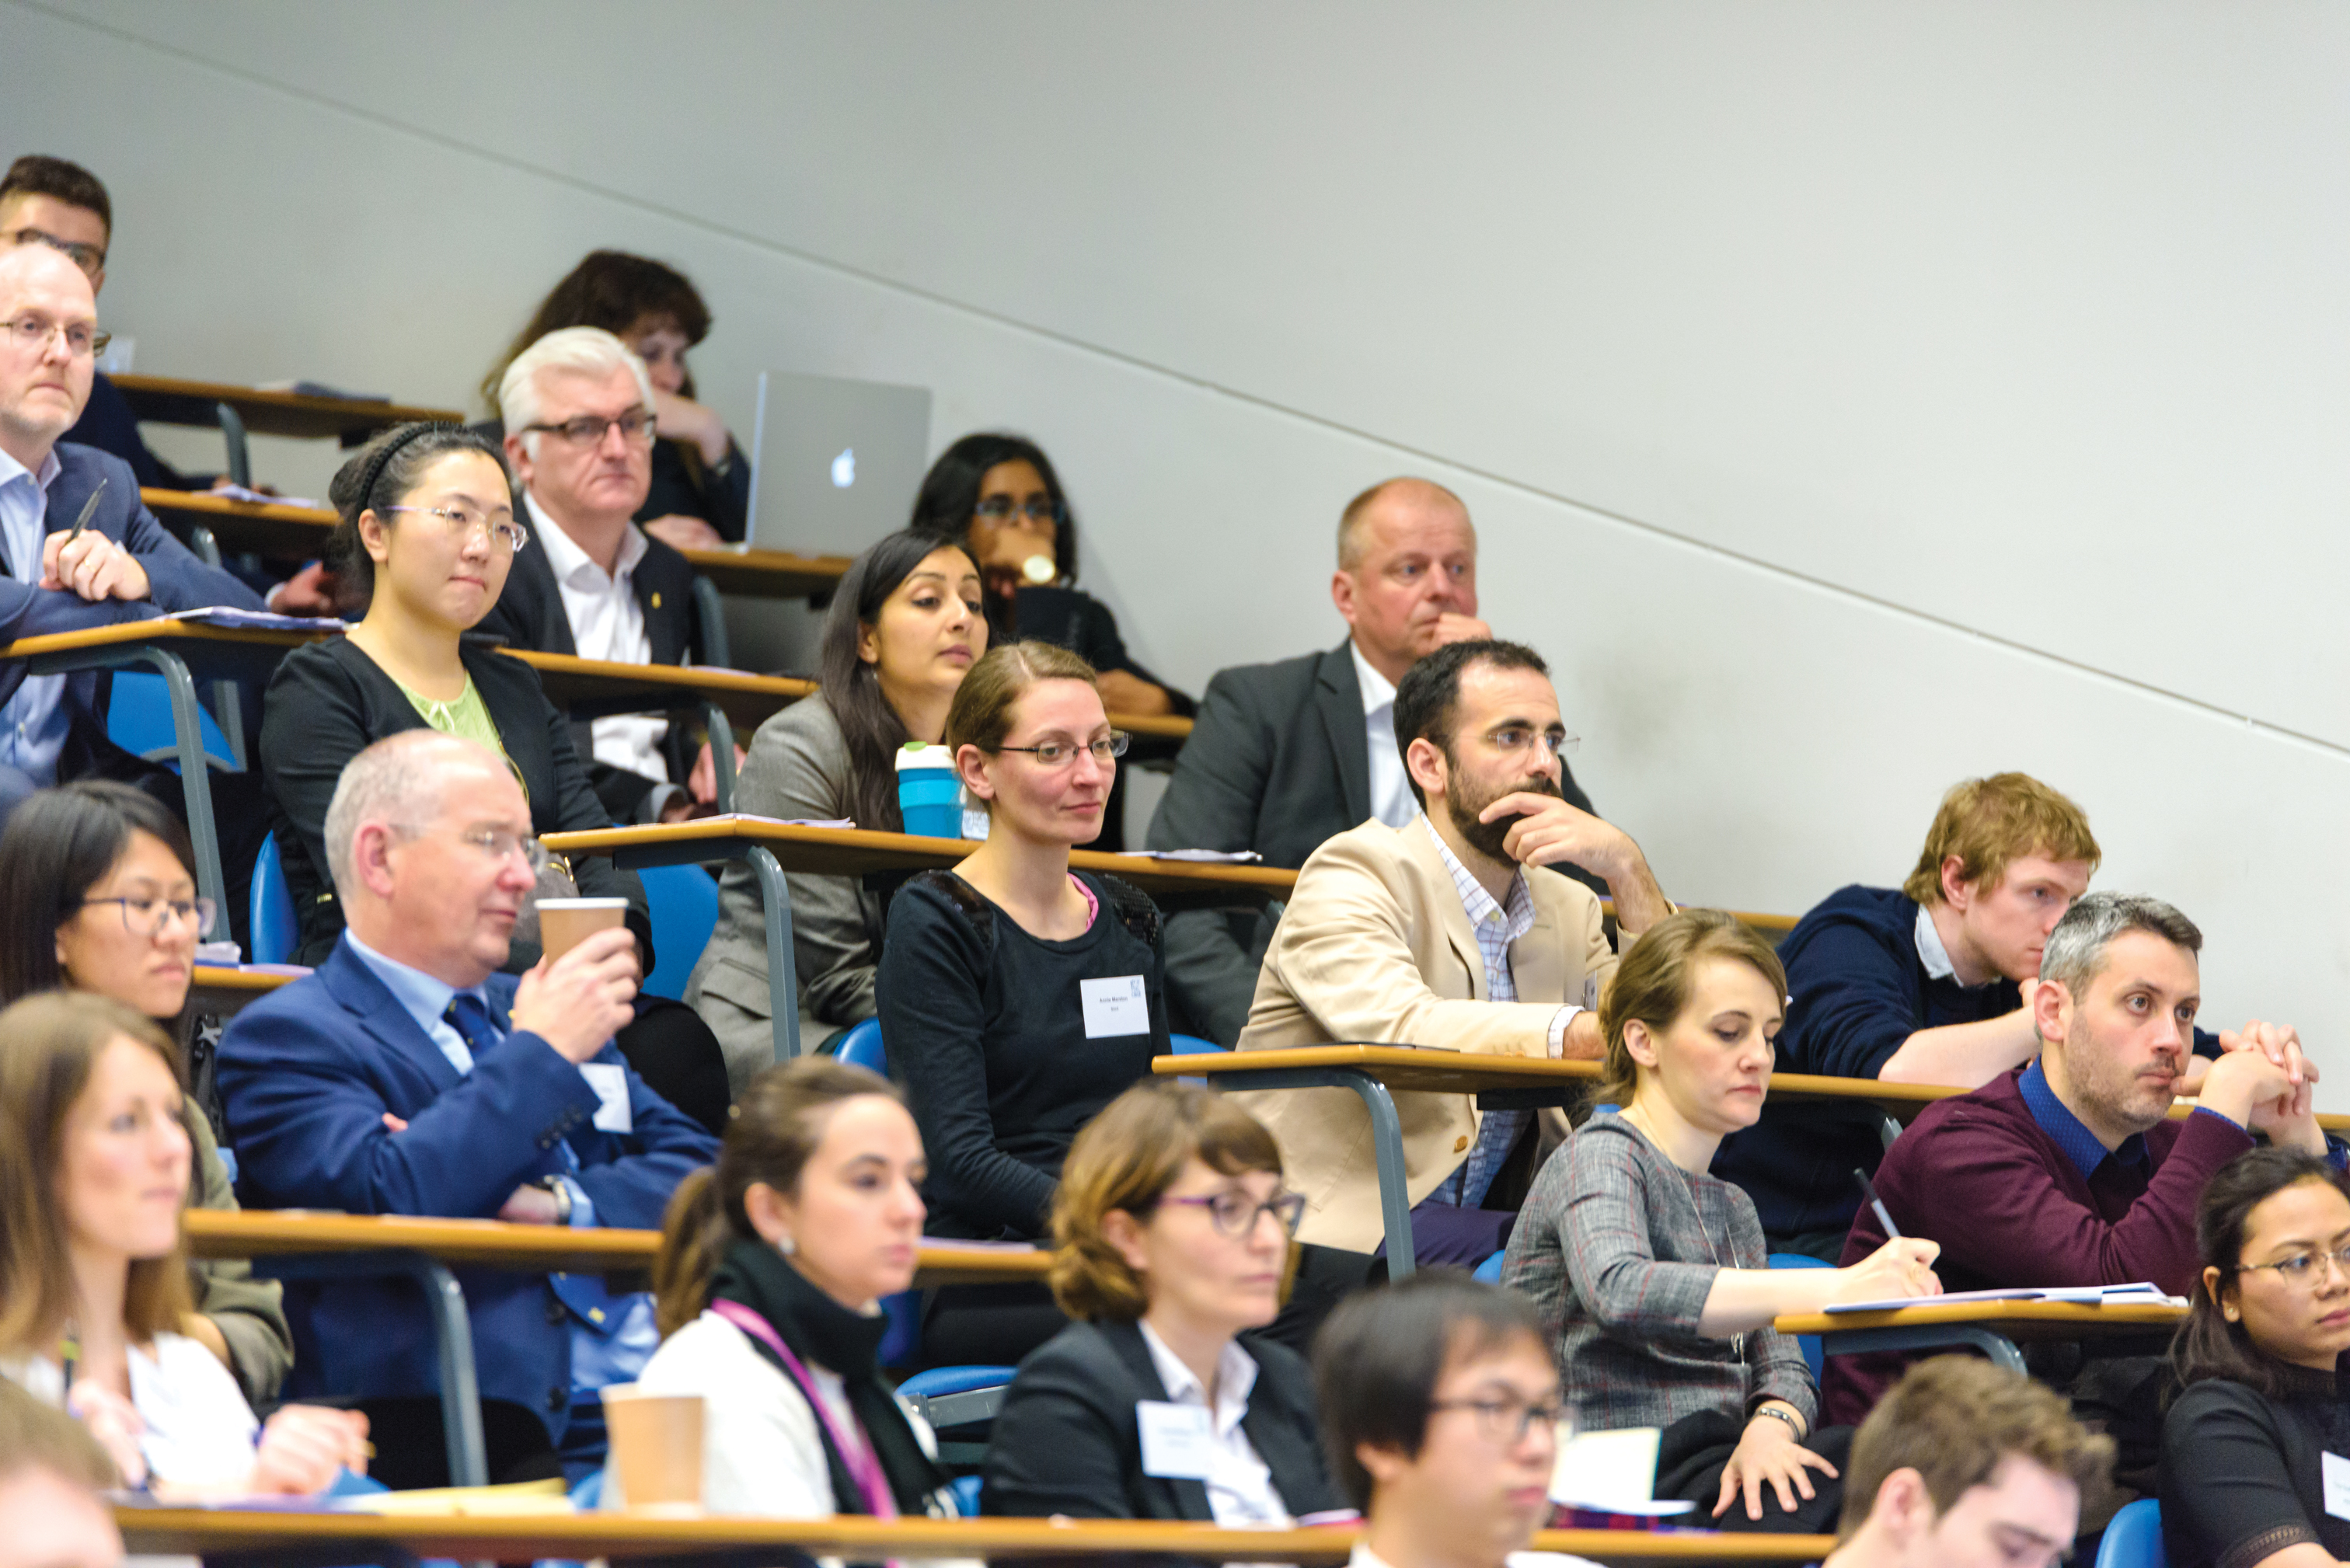 CIBSE Technocal Symposium 2018 audience